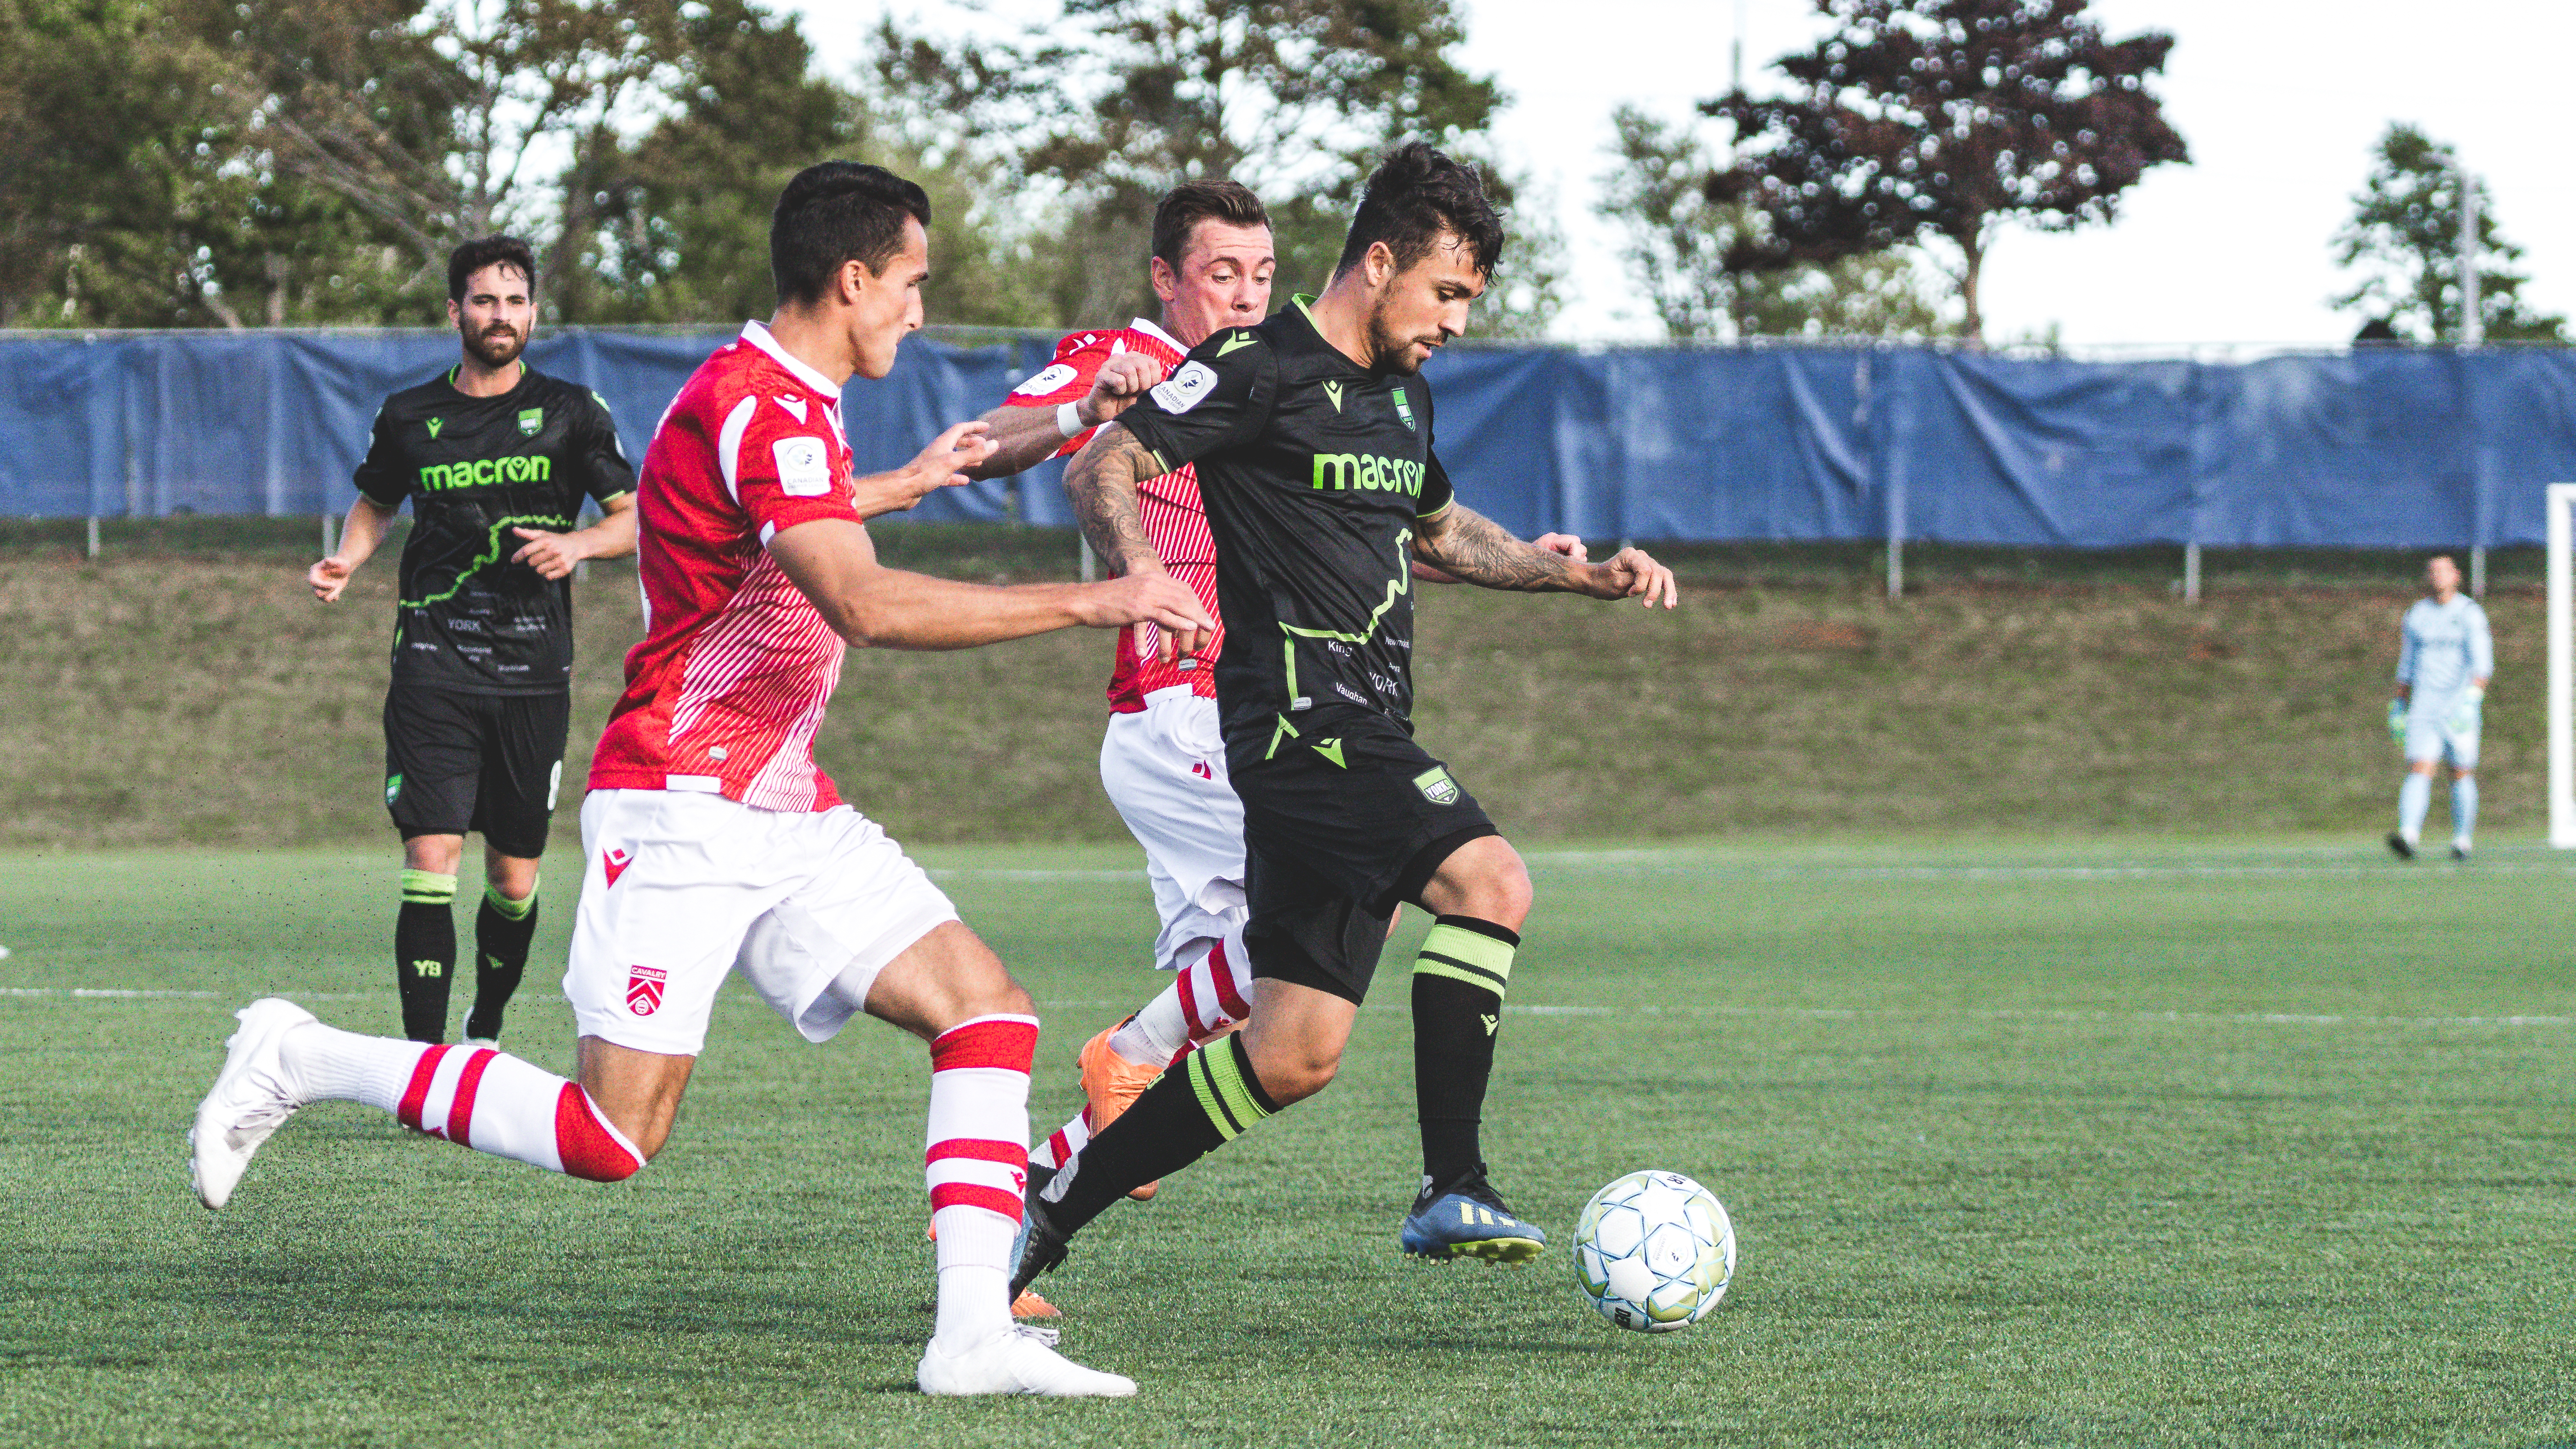 York9 FC vs. Cavalry FC at the Island Games. (Photo: CPL/Chant Photography)